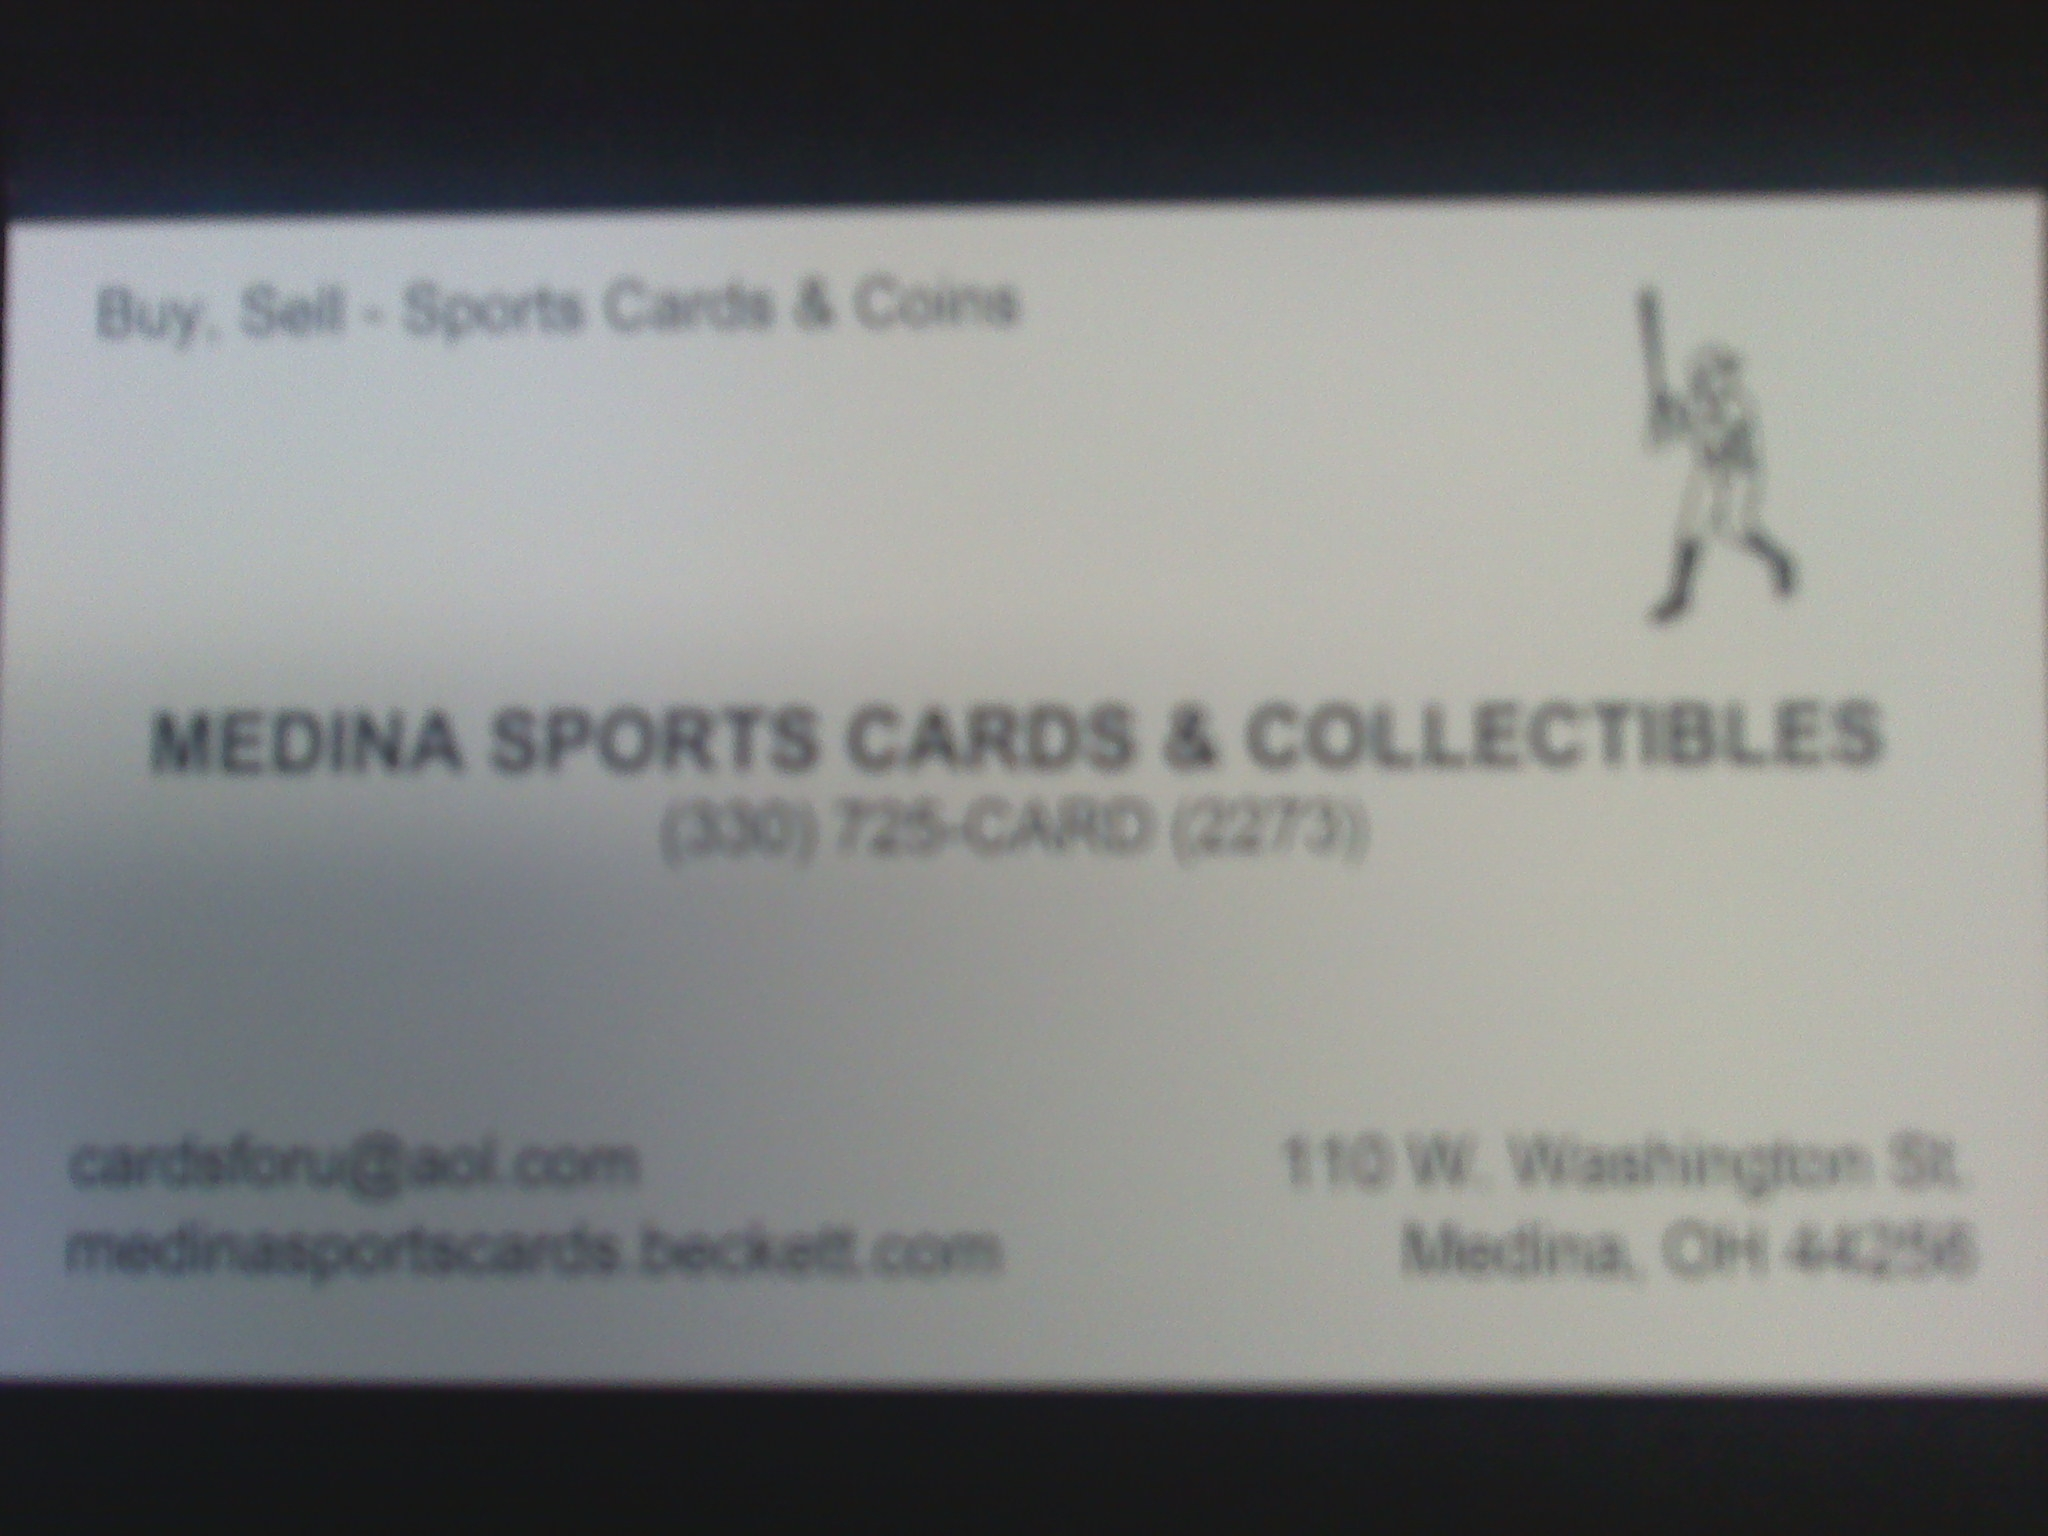 MEDINA SPORTSCARDS & COLLECTIBLES